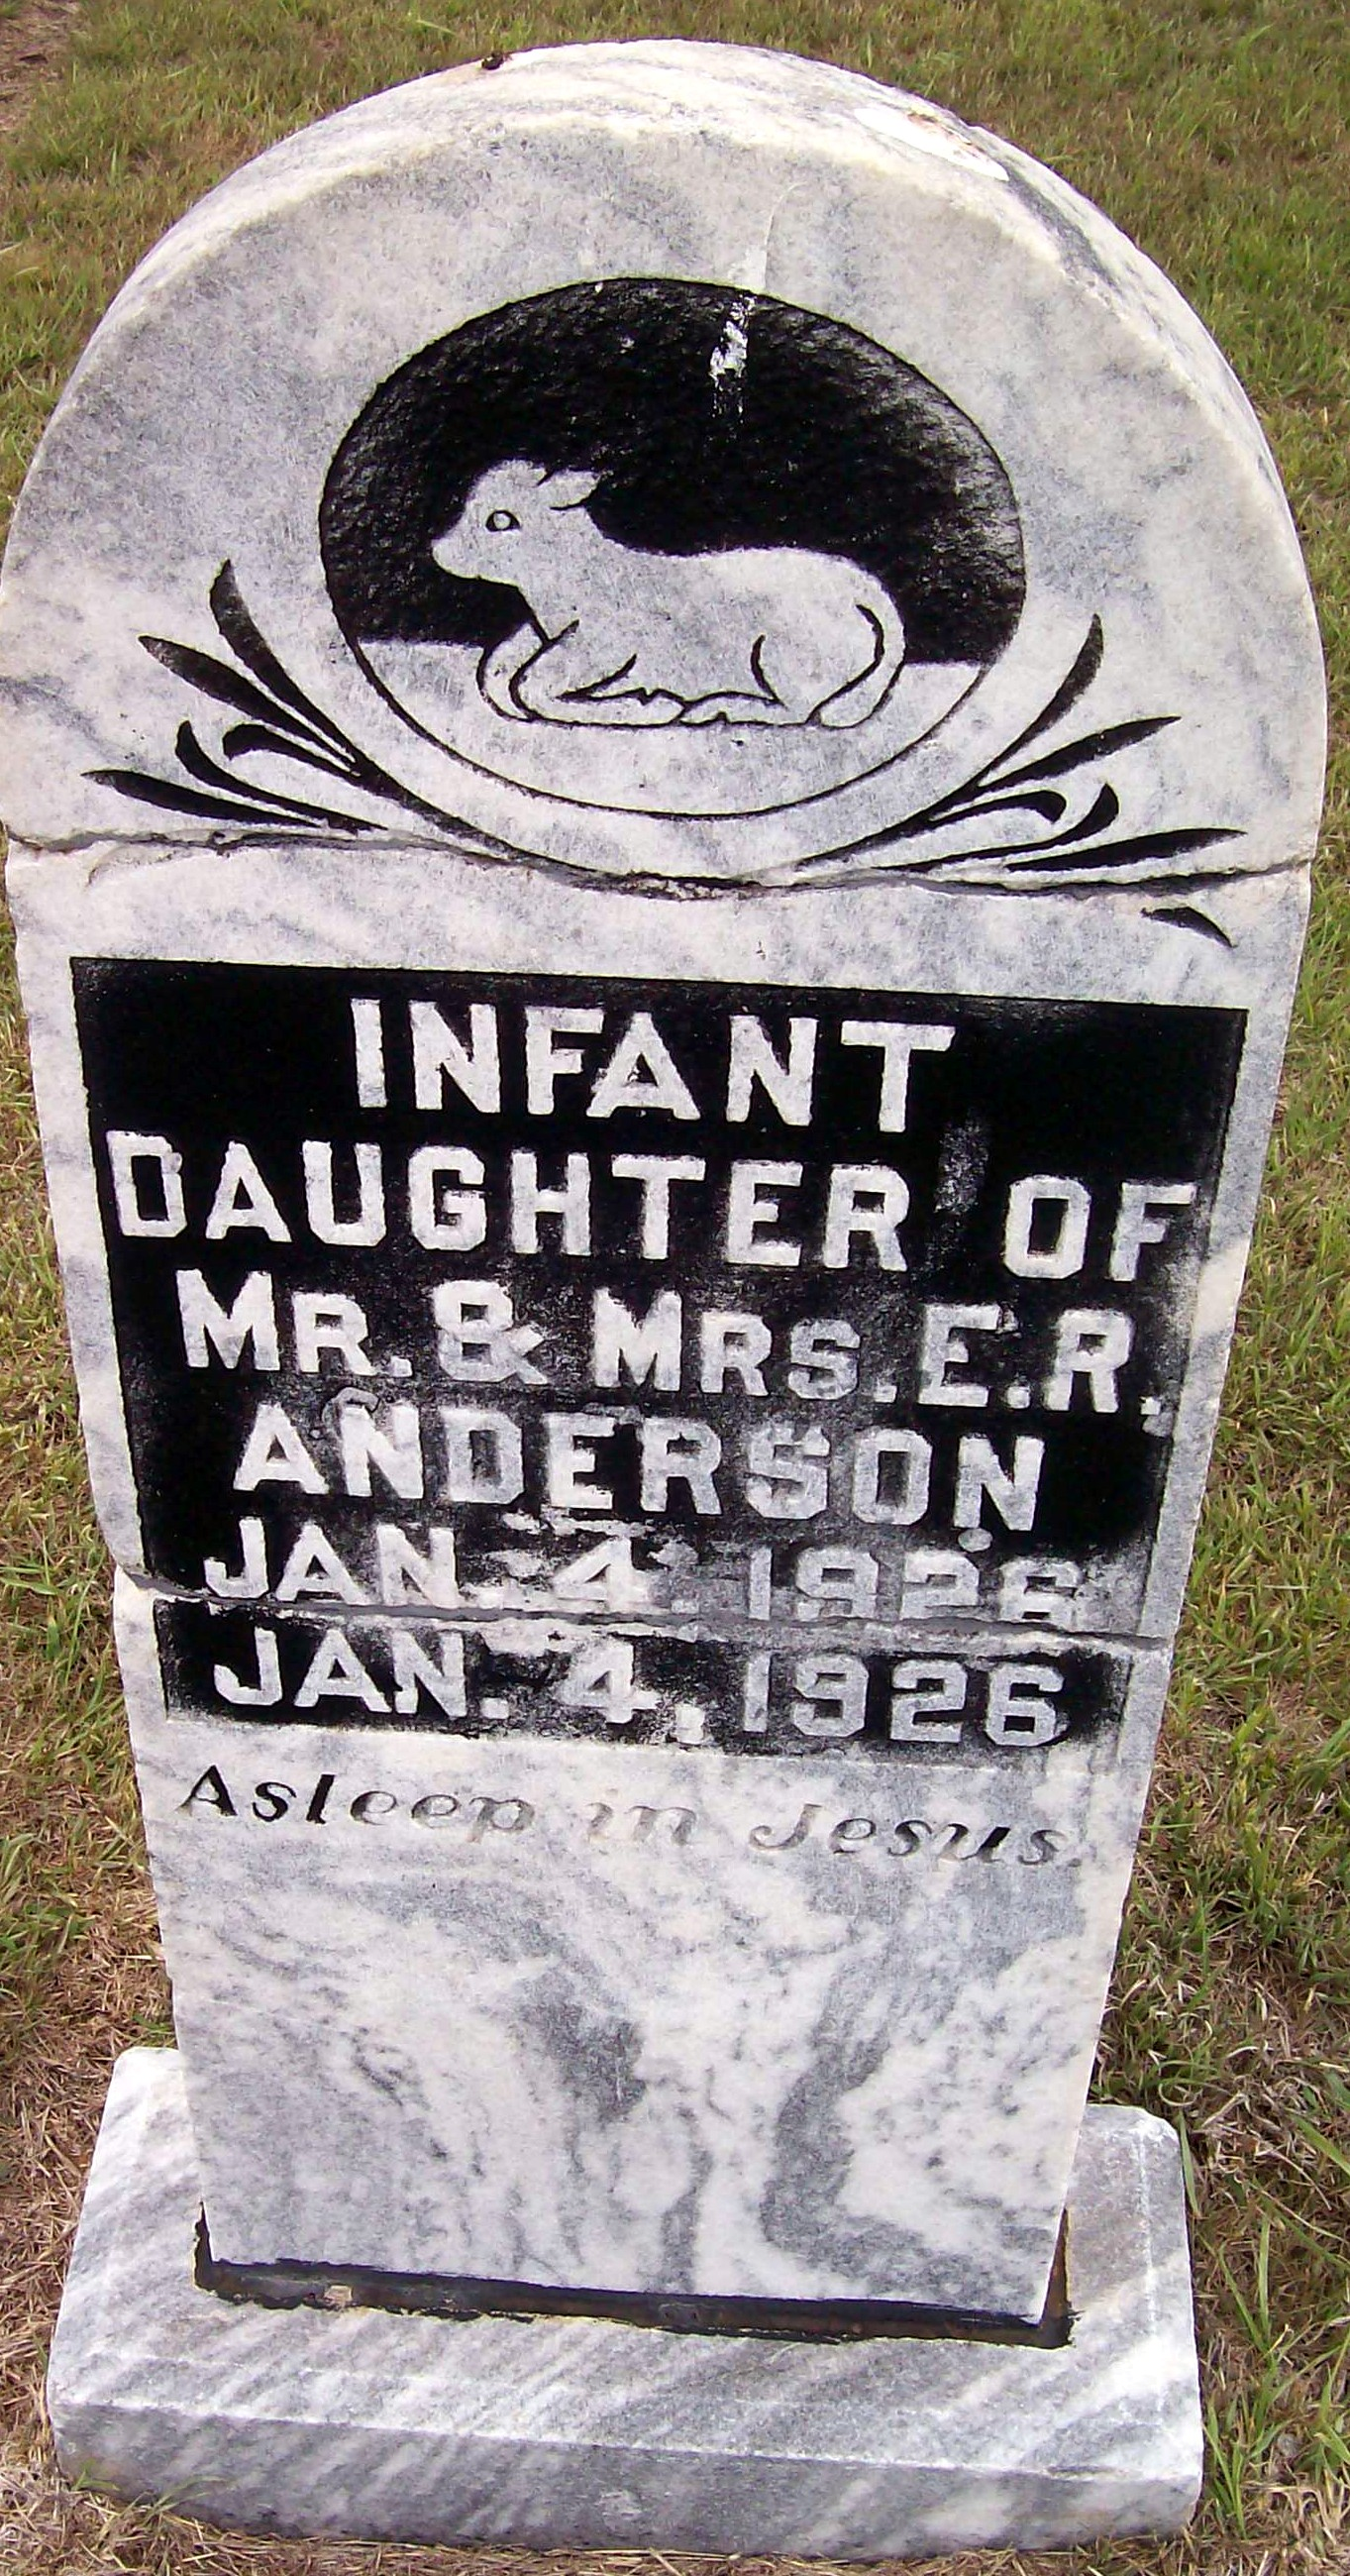 Infant Anderson